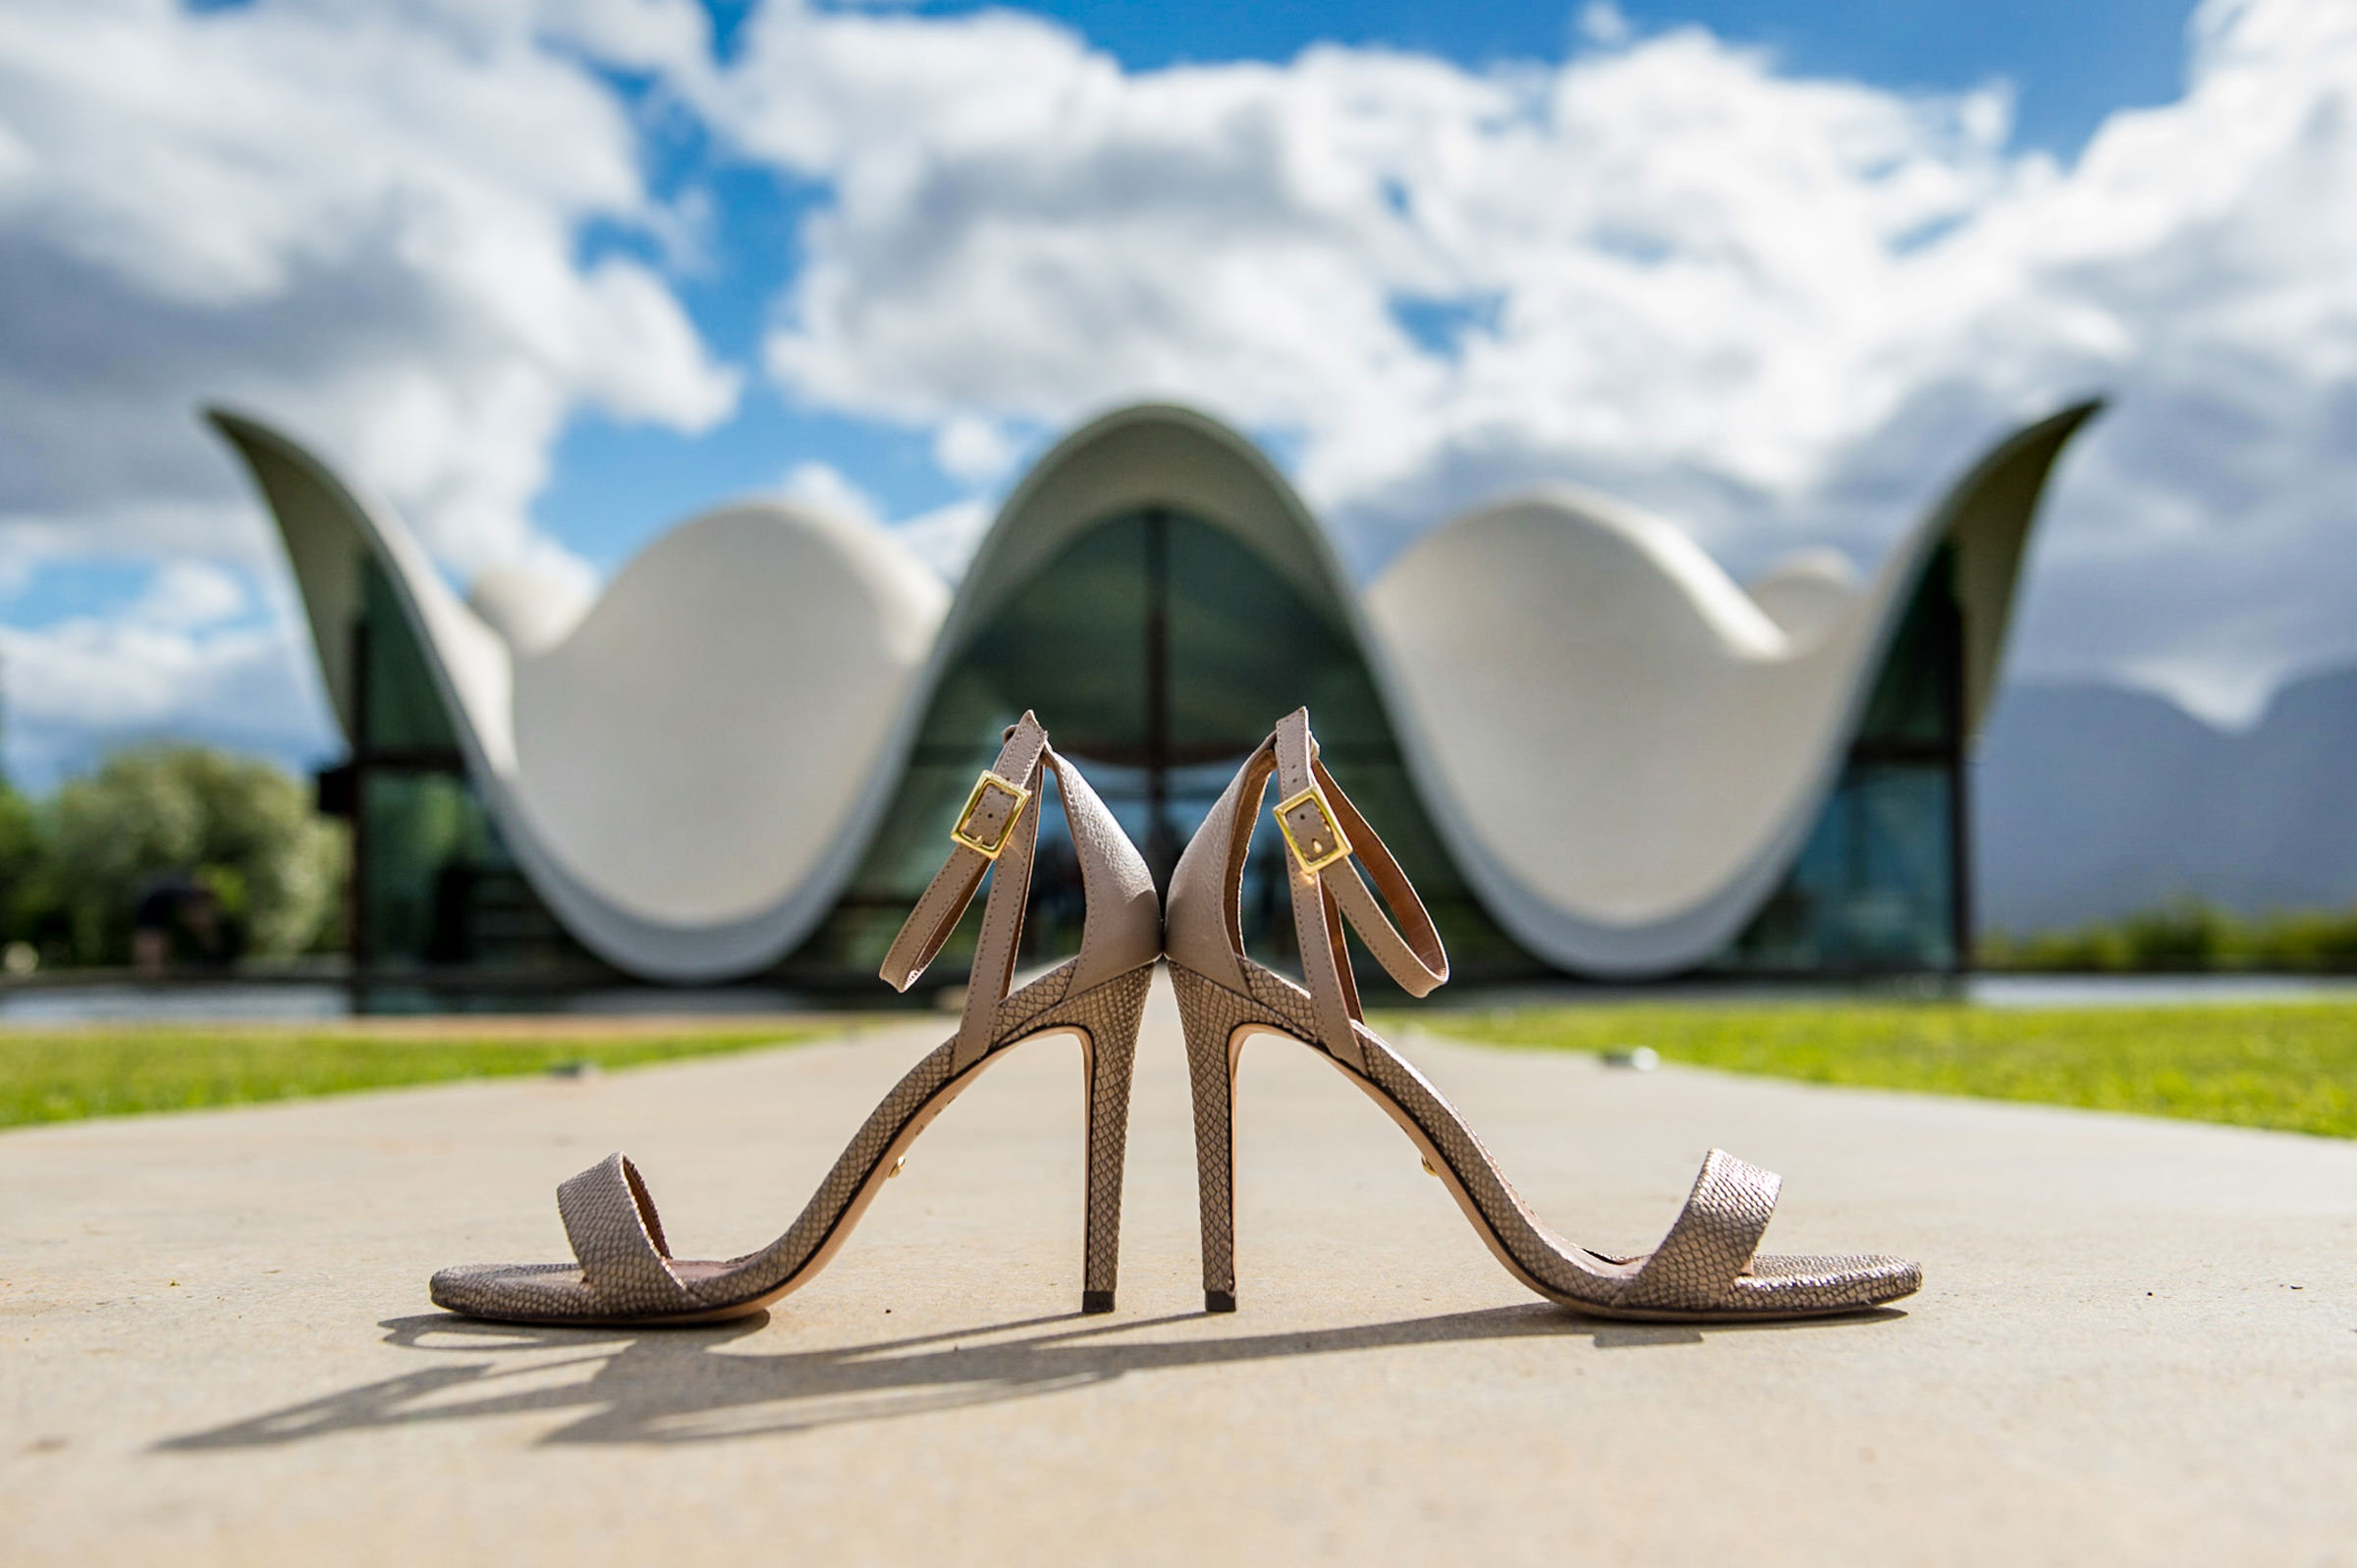 Creative composition of high heel shoes against modern building - photo by Jacki Bruniquel